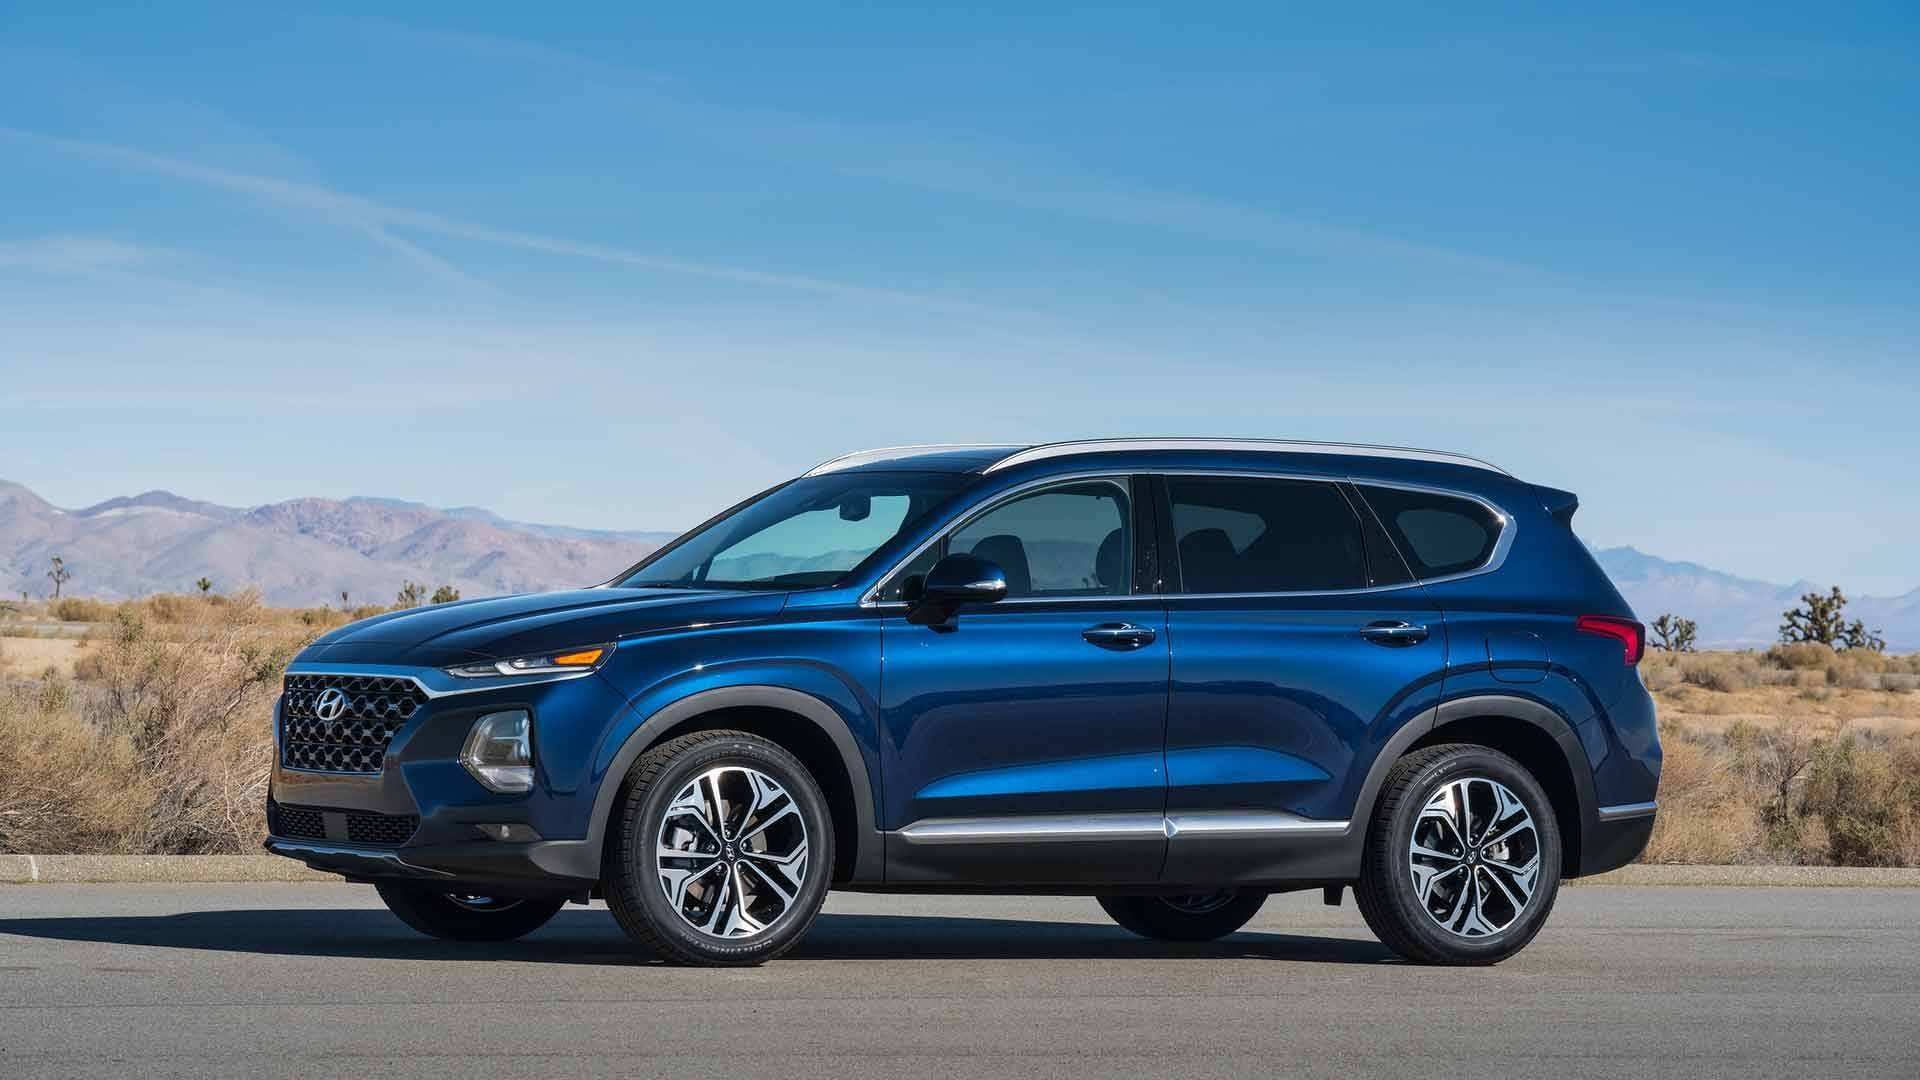 32 All New 2019 Hyundai Usa Price